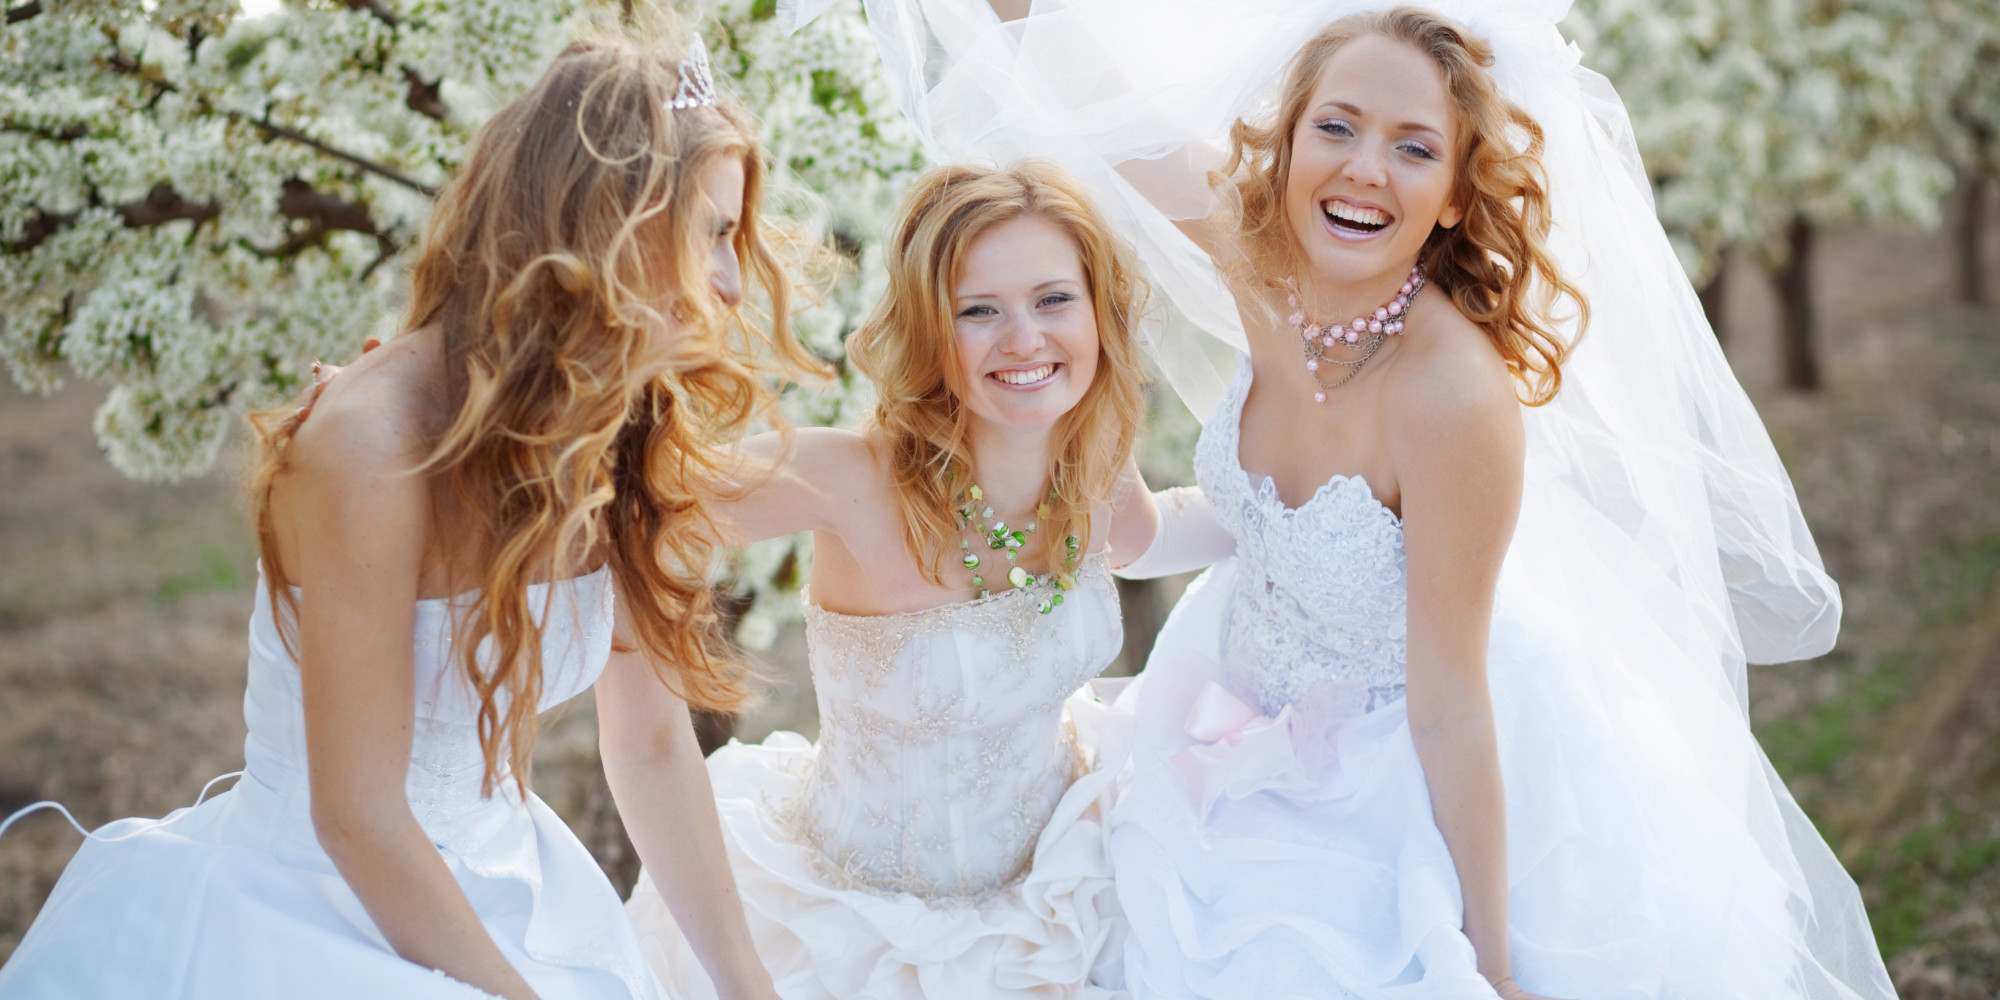 7 Wedding Gown Shopping Mistakes That Every Bride-to-Be Makes | HuffPost